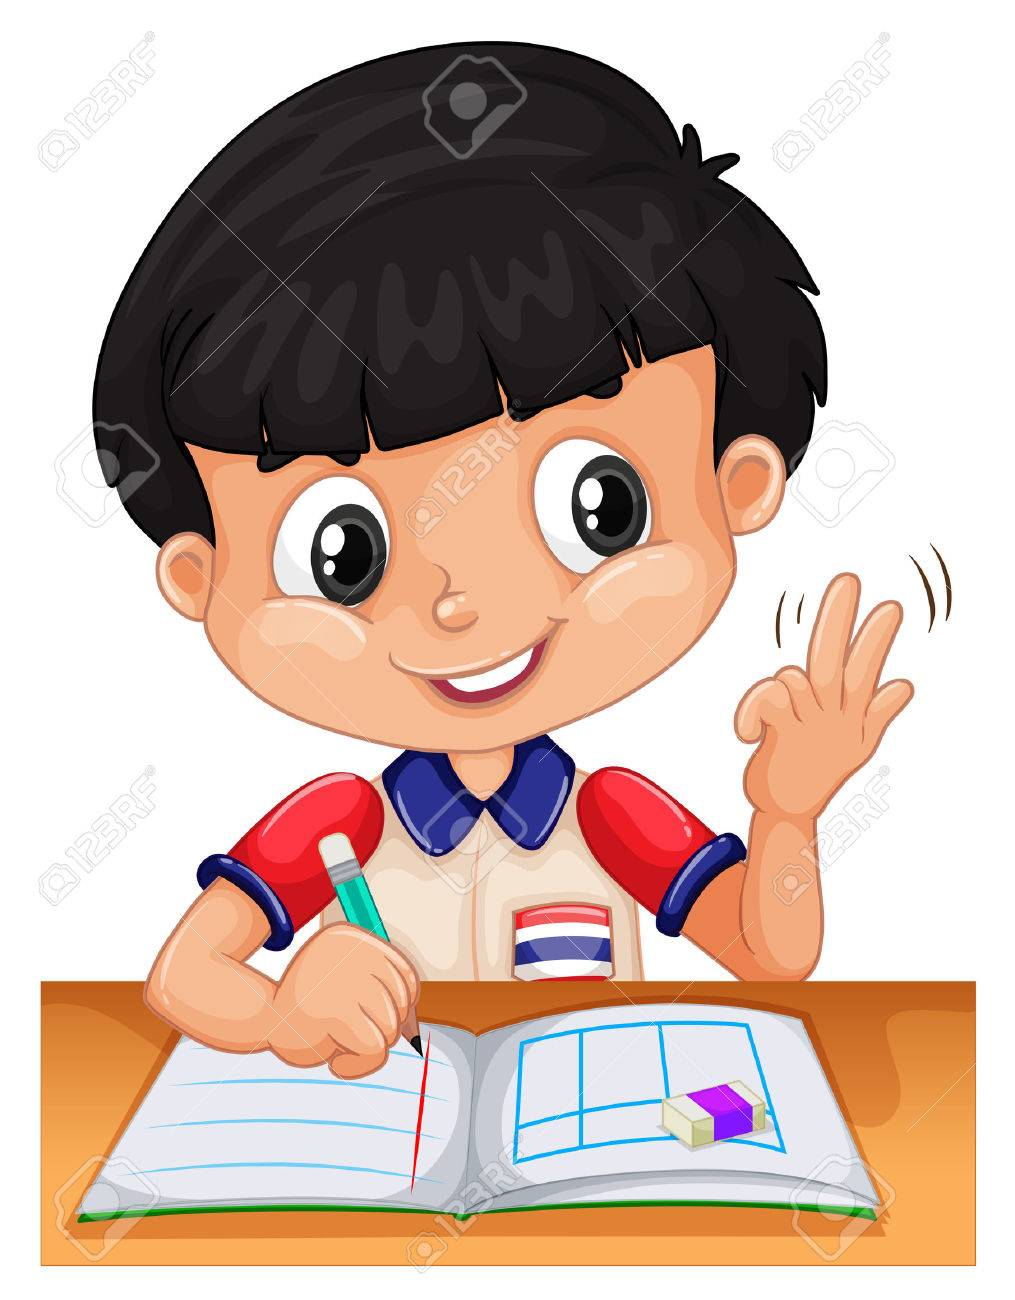 Little boy counting with fingers illustration Stock Vector - 45866241